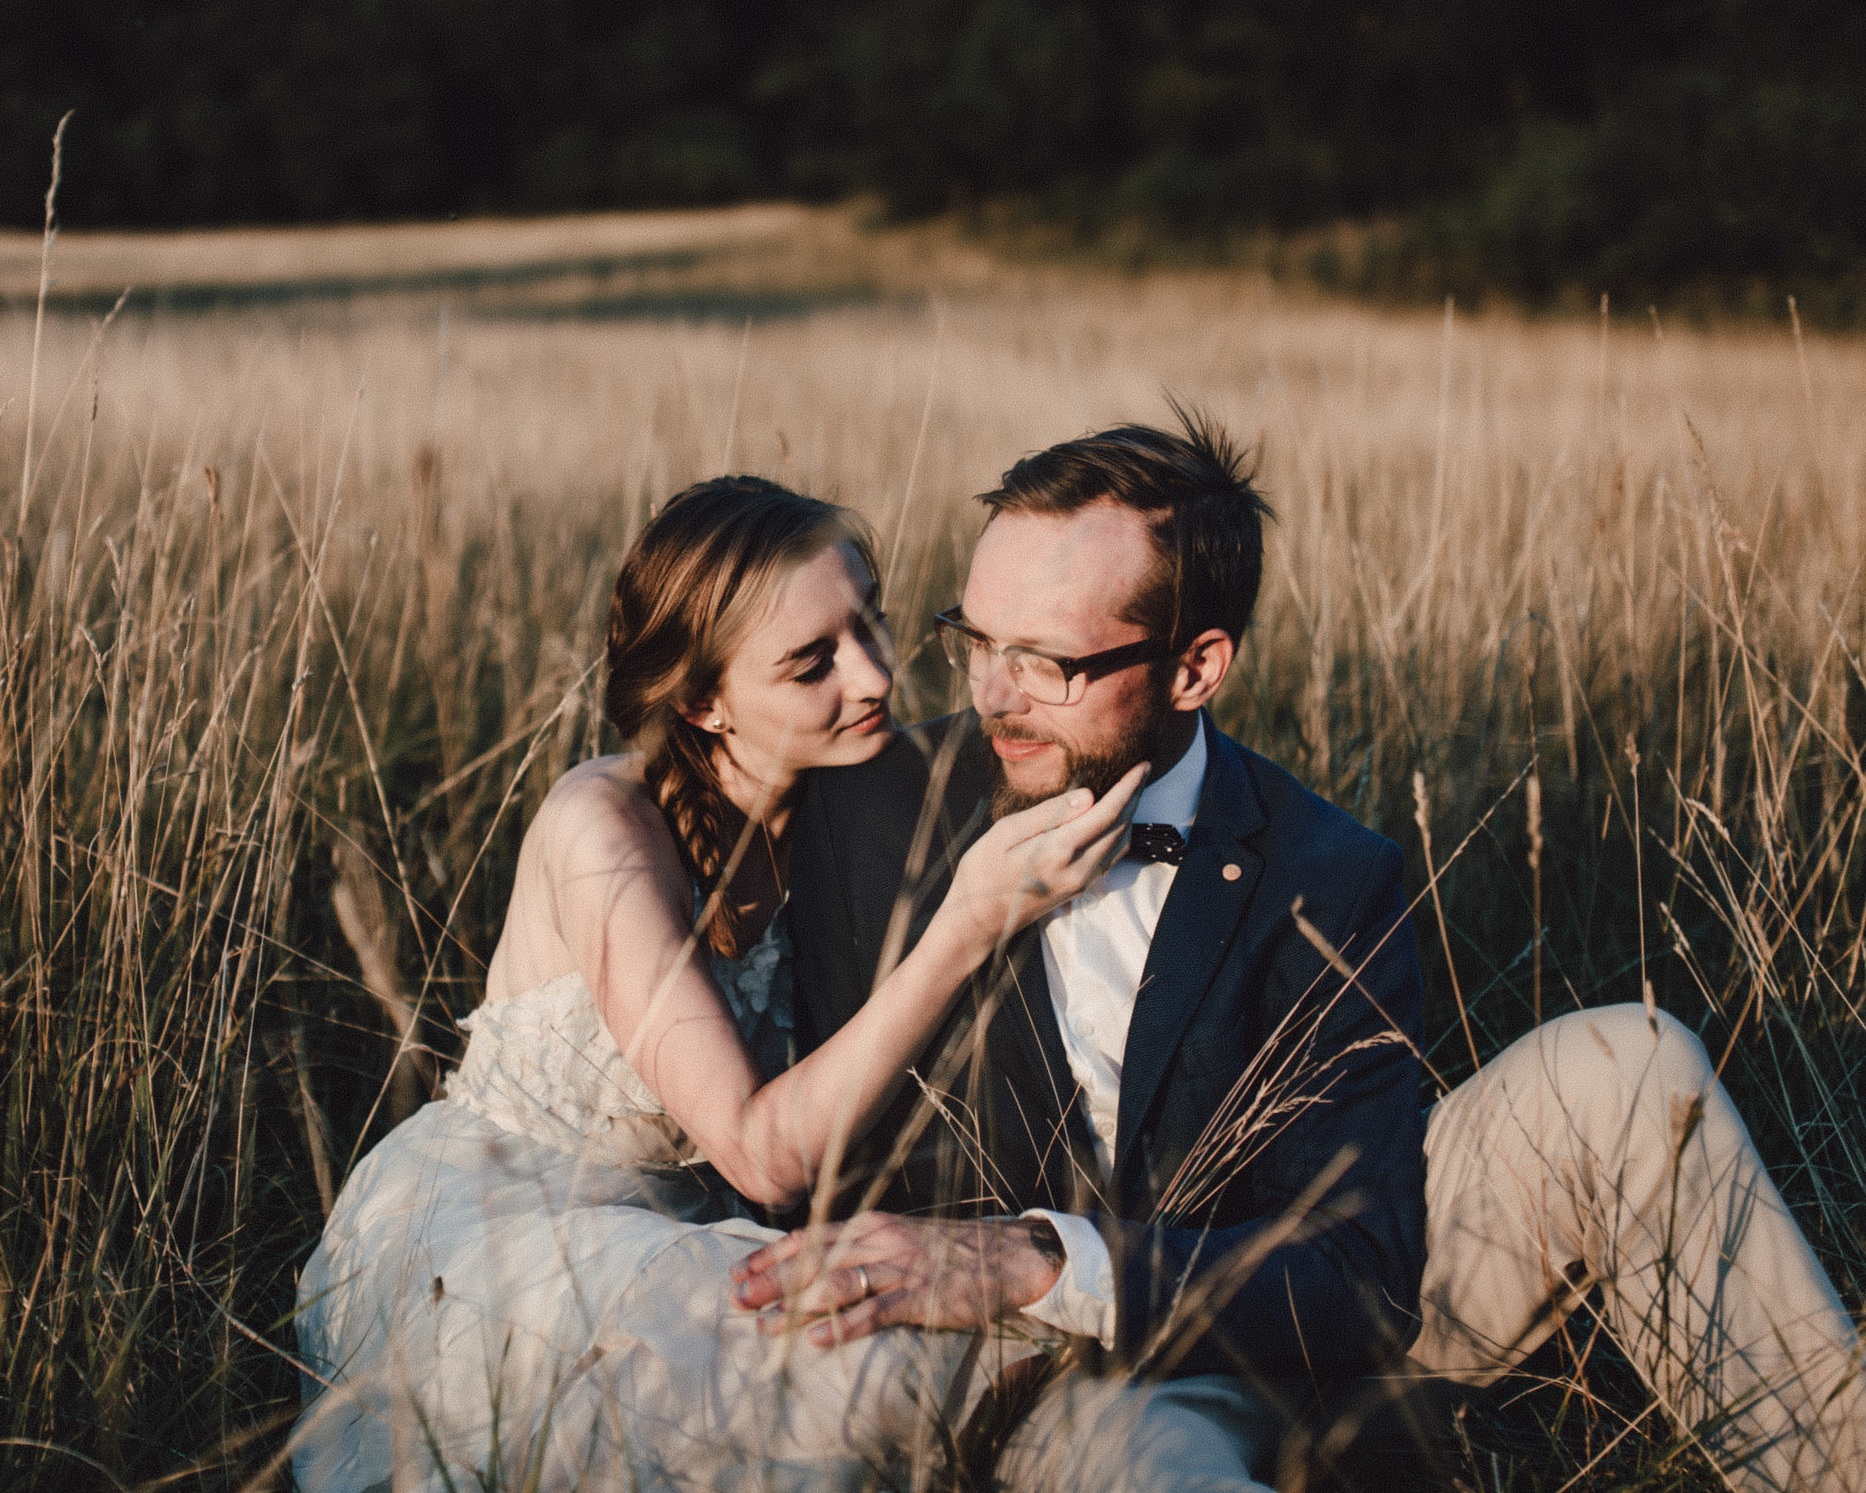 ELOPEMENT - ceremonies with less than 10 guests4 hours continuous coverageonline gallery & print shopdigital downloadsflash-drive with files$1200(week-days $1000)add video for + $600